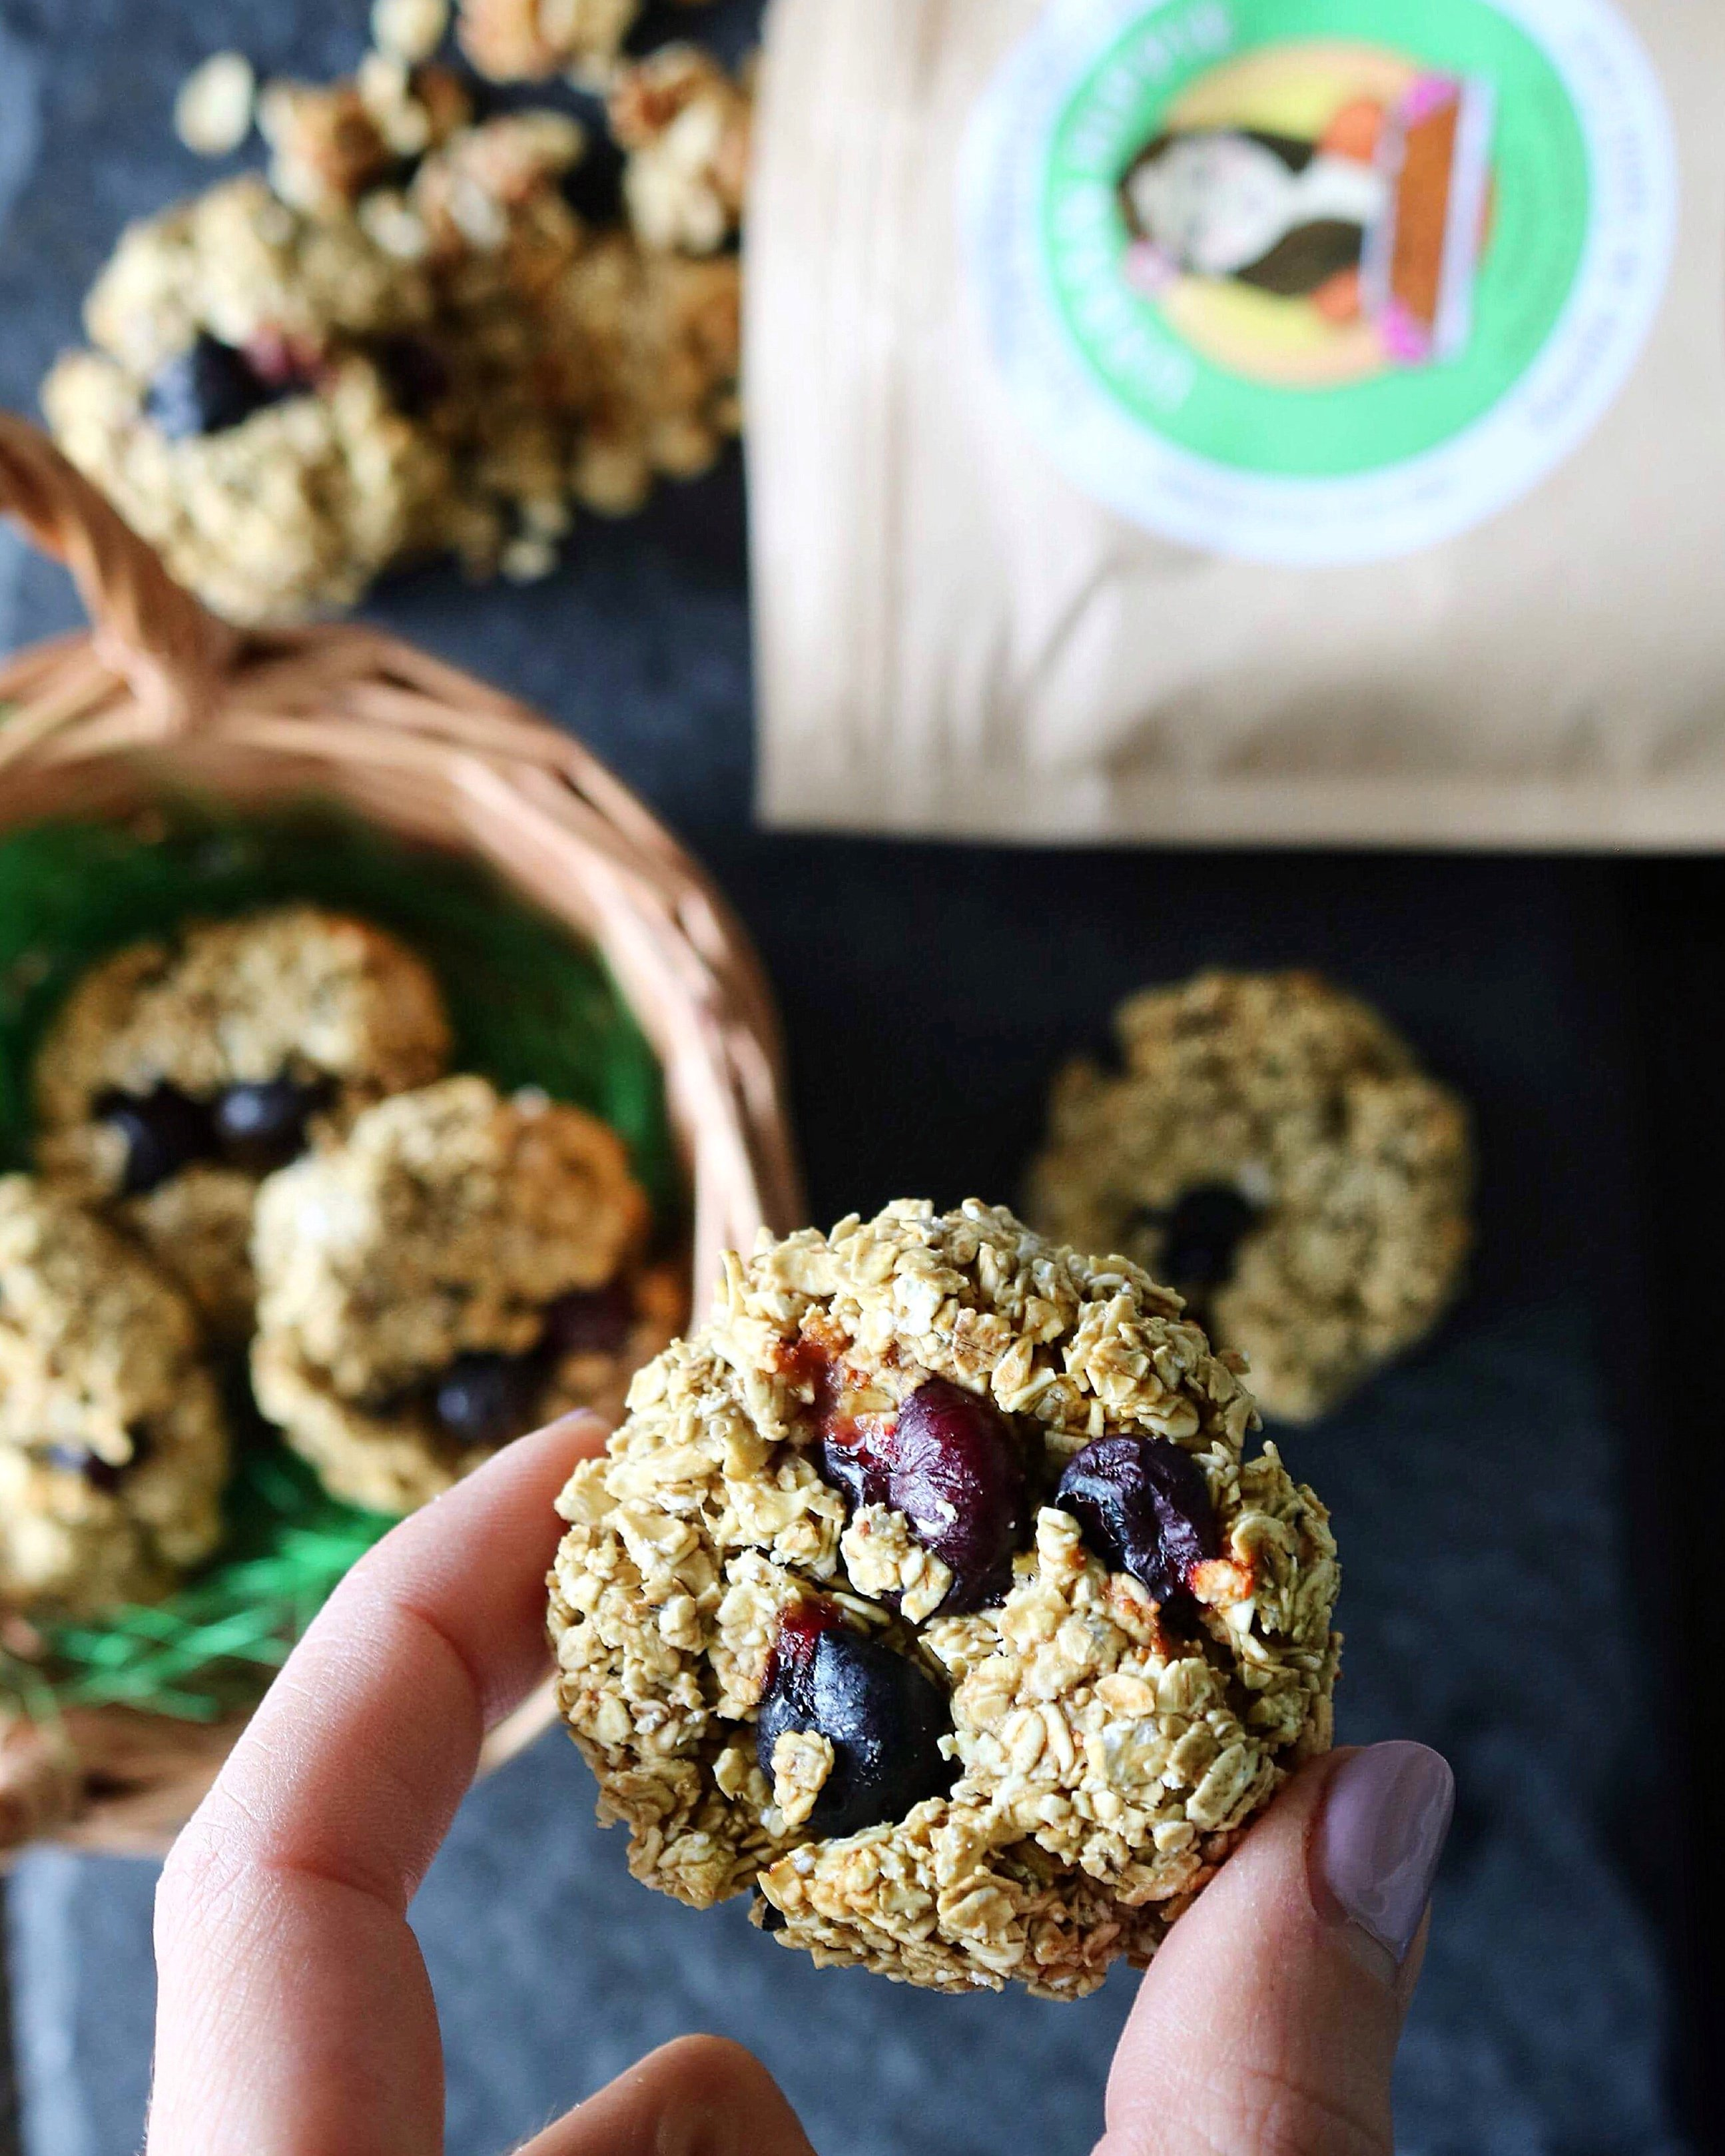 Holding between two fingers a vegan granola cookie with a bag of Urban Hippie Granola peeking out from the side of the image